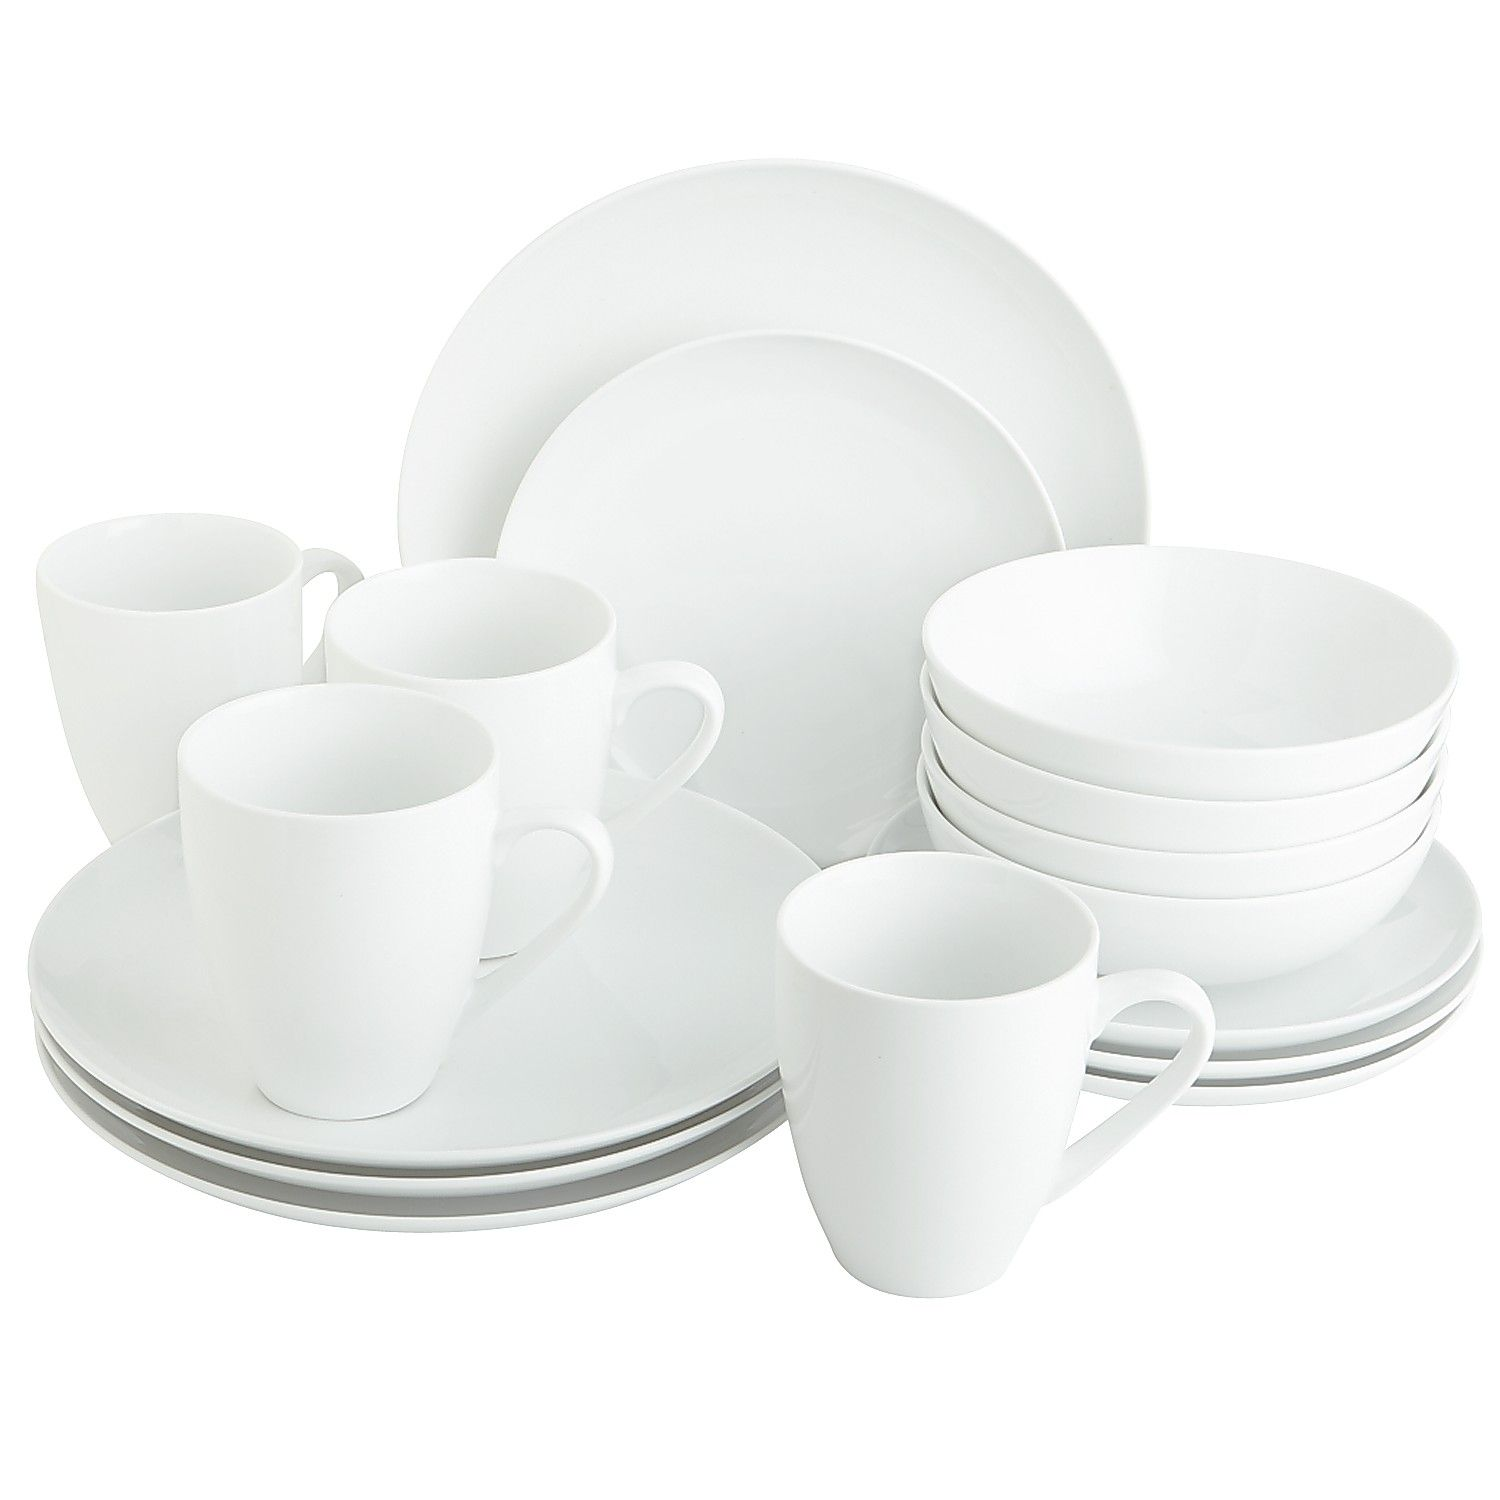 Porcelain 16-Piece Coupe White Dinnerware Set  sc 1 st  Pinterest & Porcelain 16-Piece Coupe White Dinnerware Set | Dinnerware and Porcelain